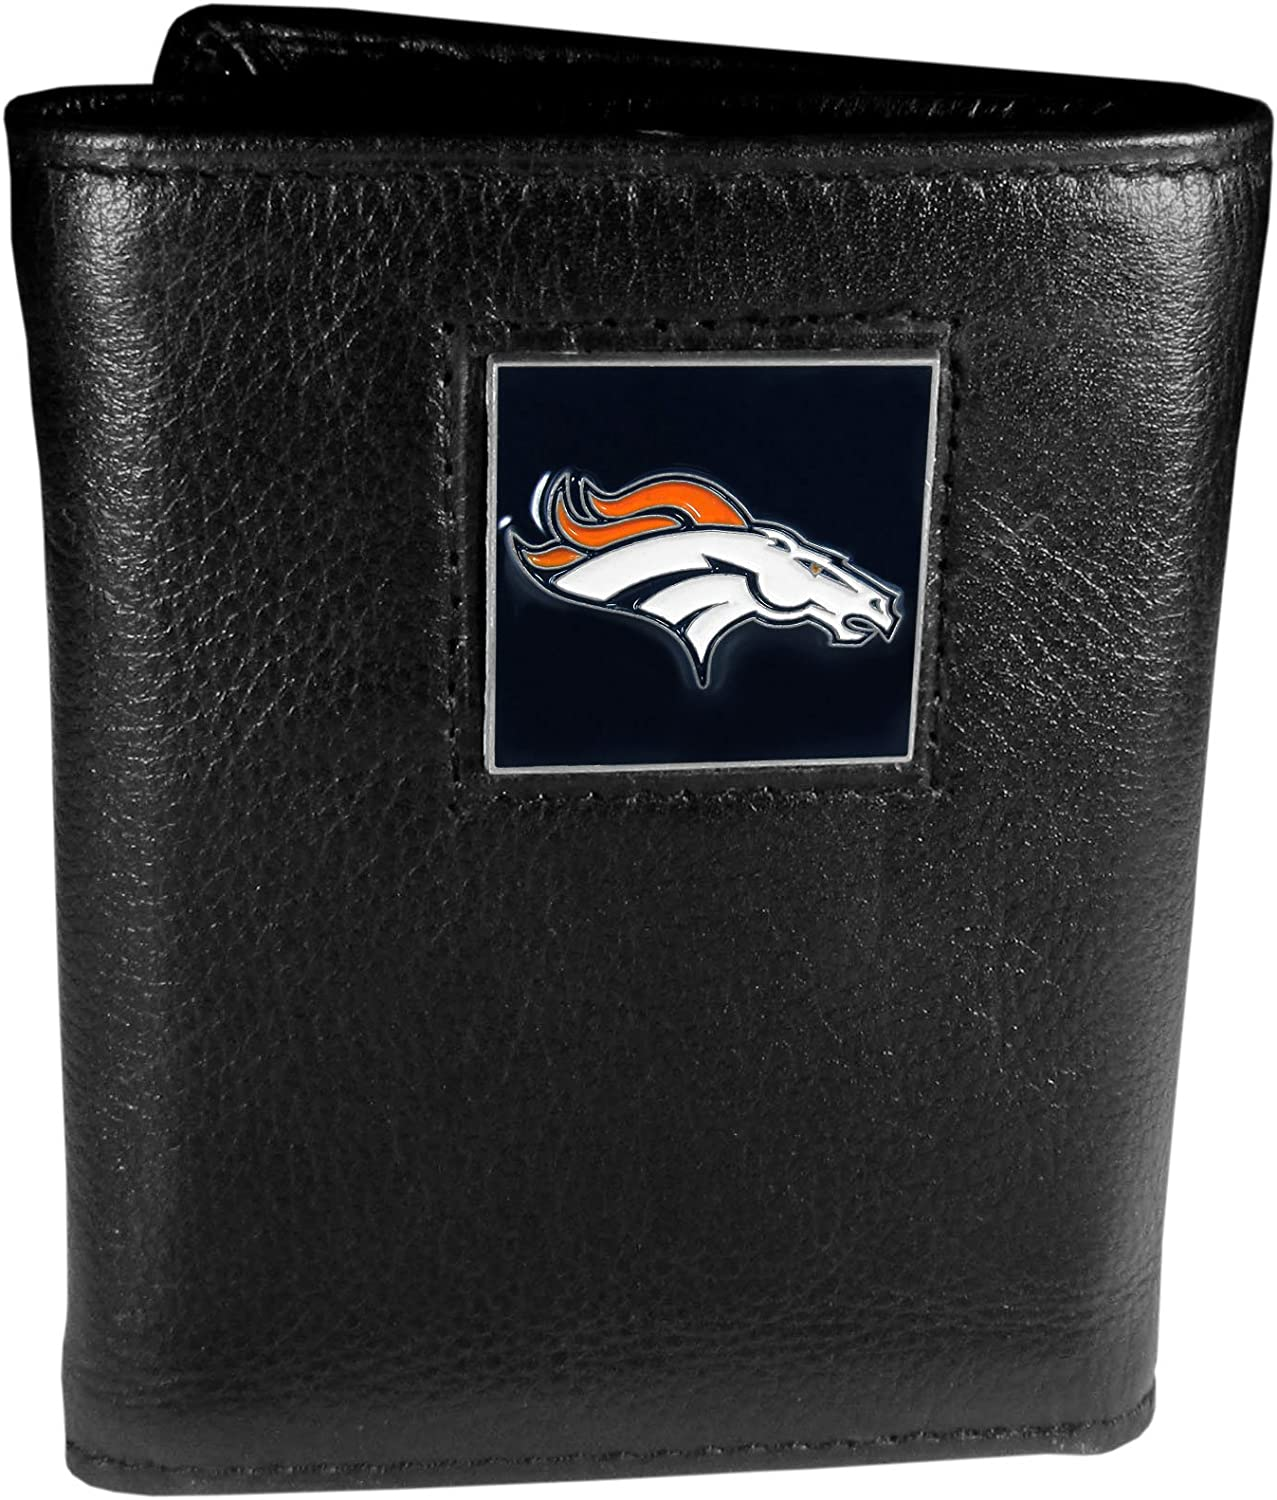 Siskiyou NFL Denver Free shipping anywhere in the nation Broncos Black Leather Wallet Challenge the lowest price of Japan Tri-Fold